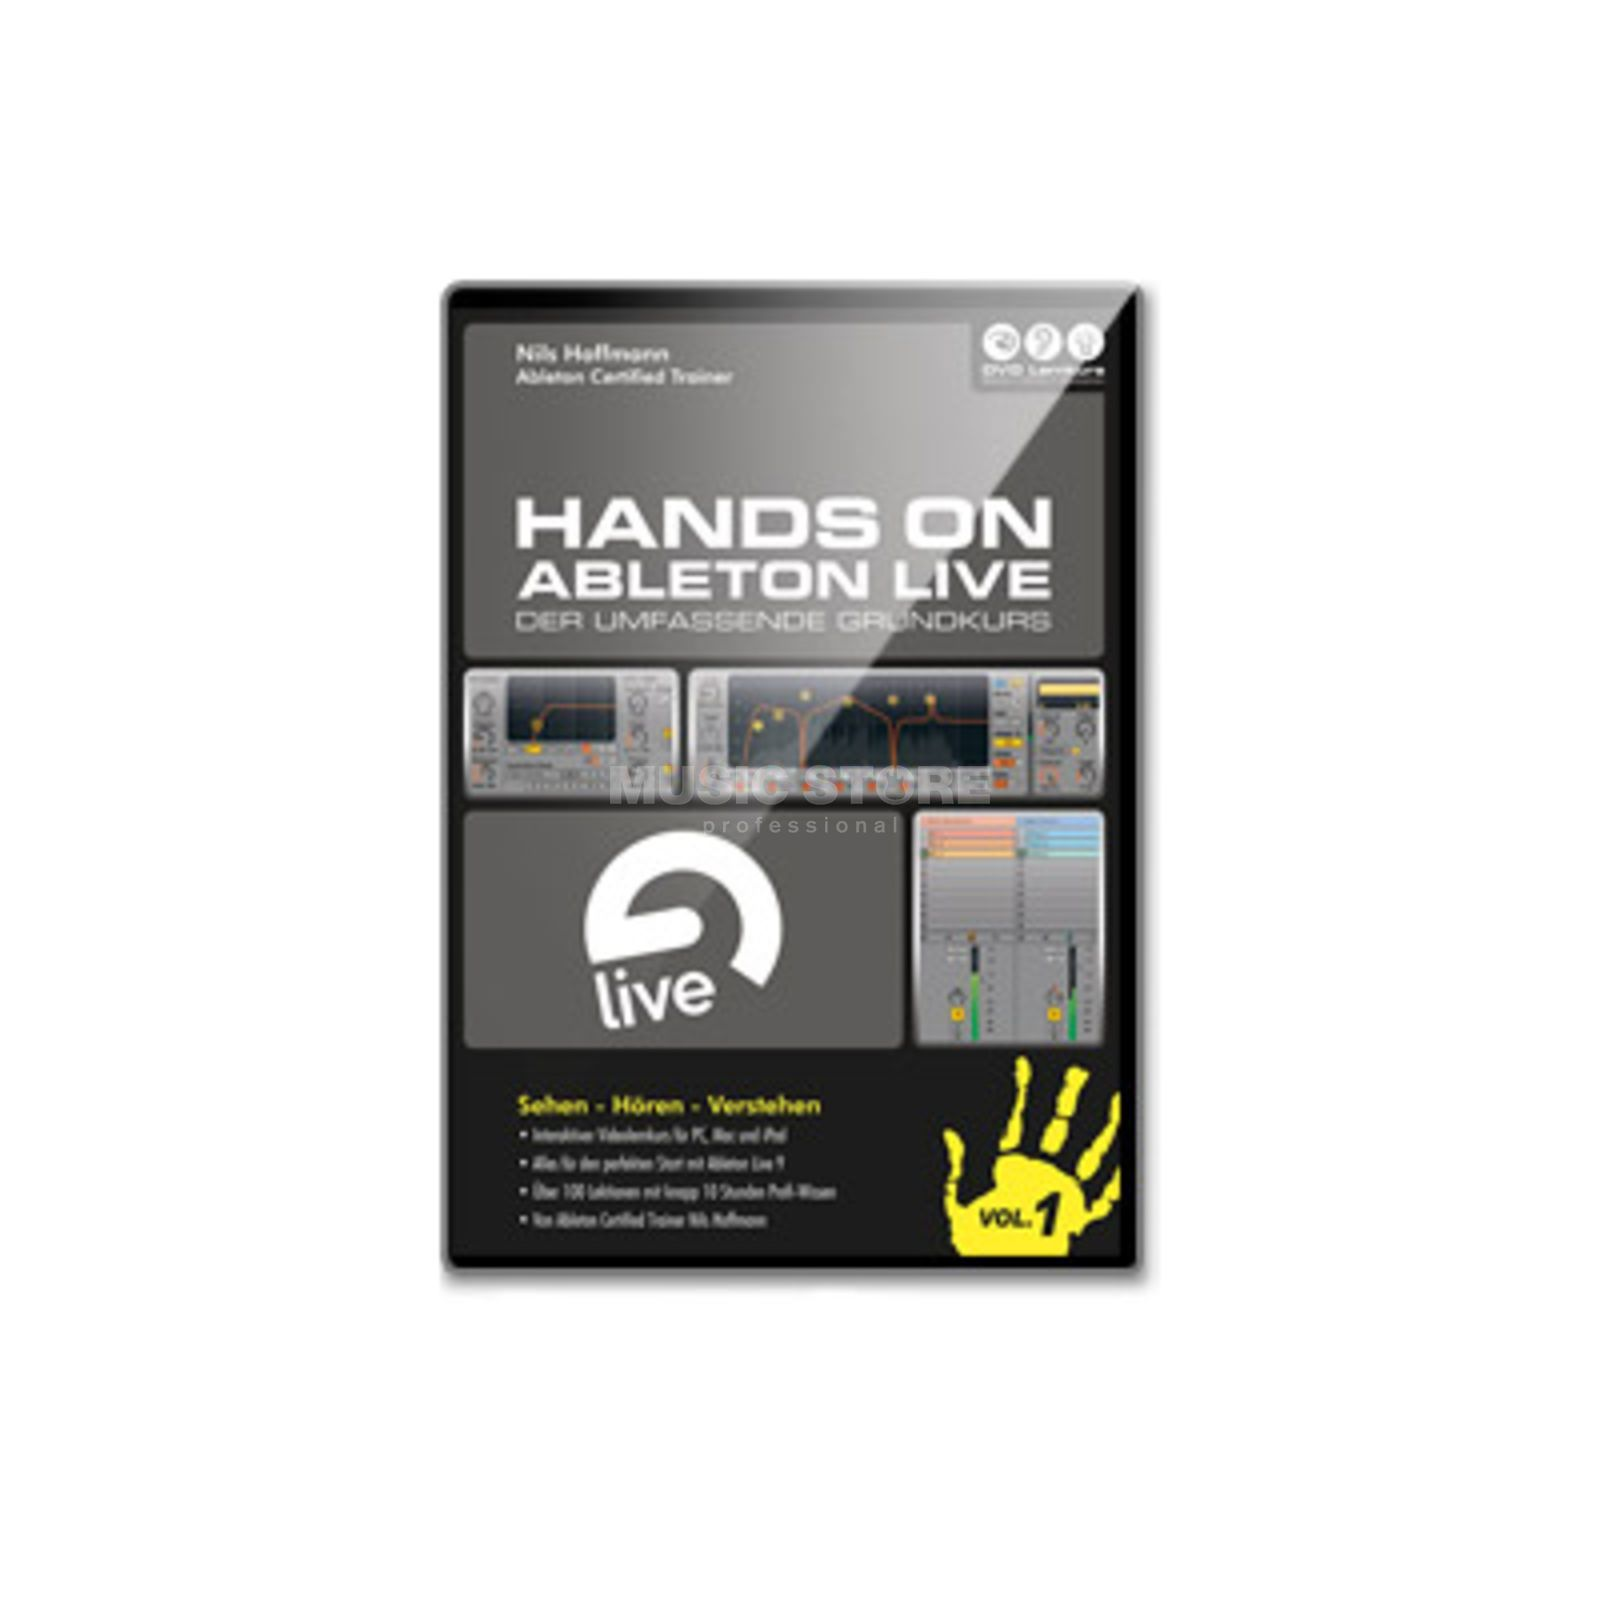 DVD Lernkurs Hands On Ableton Live Vol.1 Basics and Introduction Produktbillede